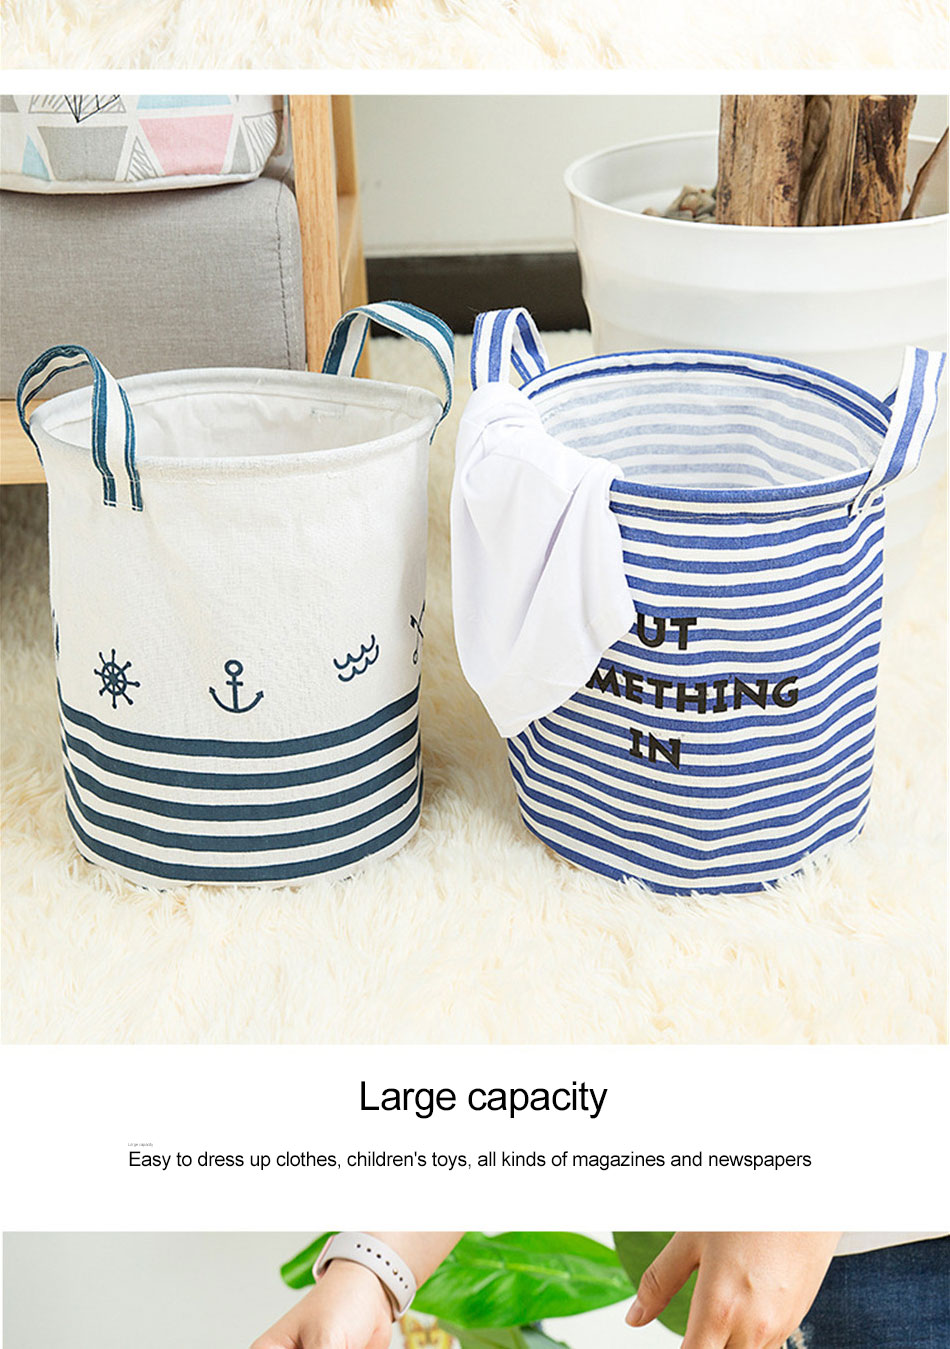 Storage Baskets Folding Laundry Basket Yellow Arrow Couple Linen Washing Clothes Barrel Bags With Handles Kids Toys Hamper Bag (5)